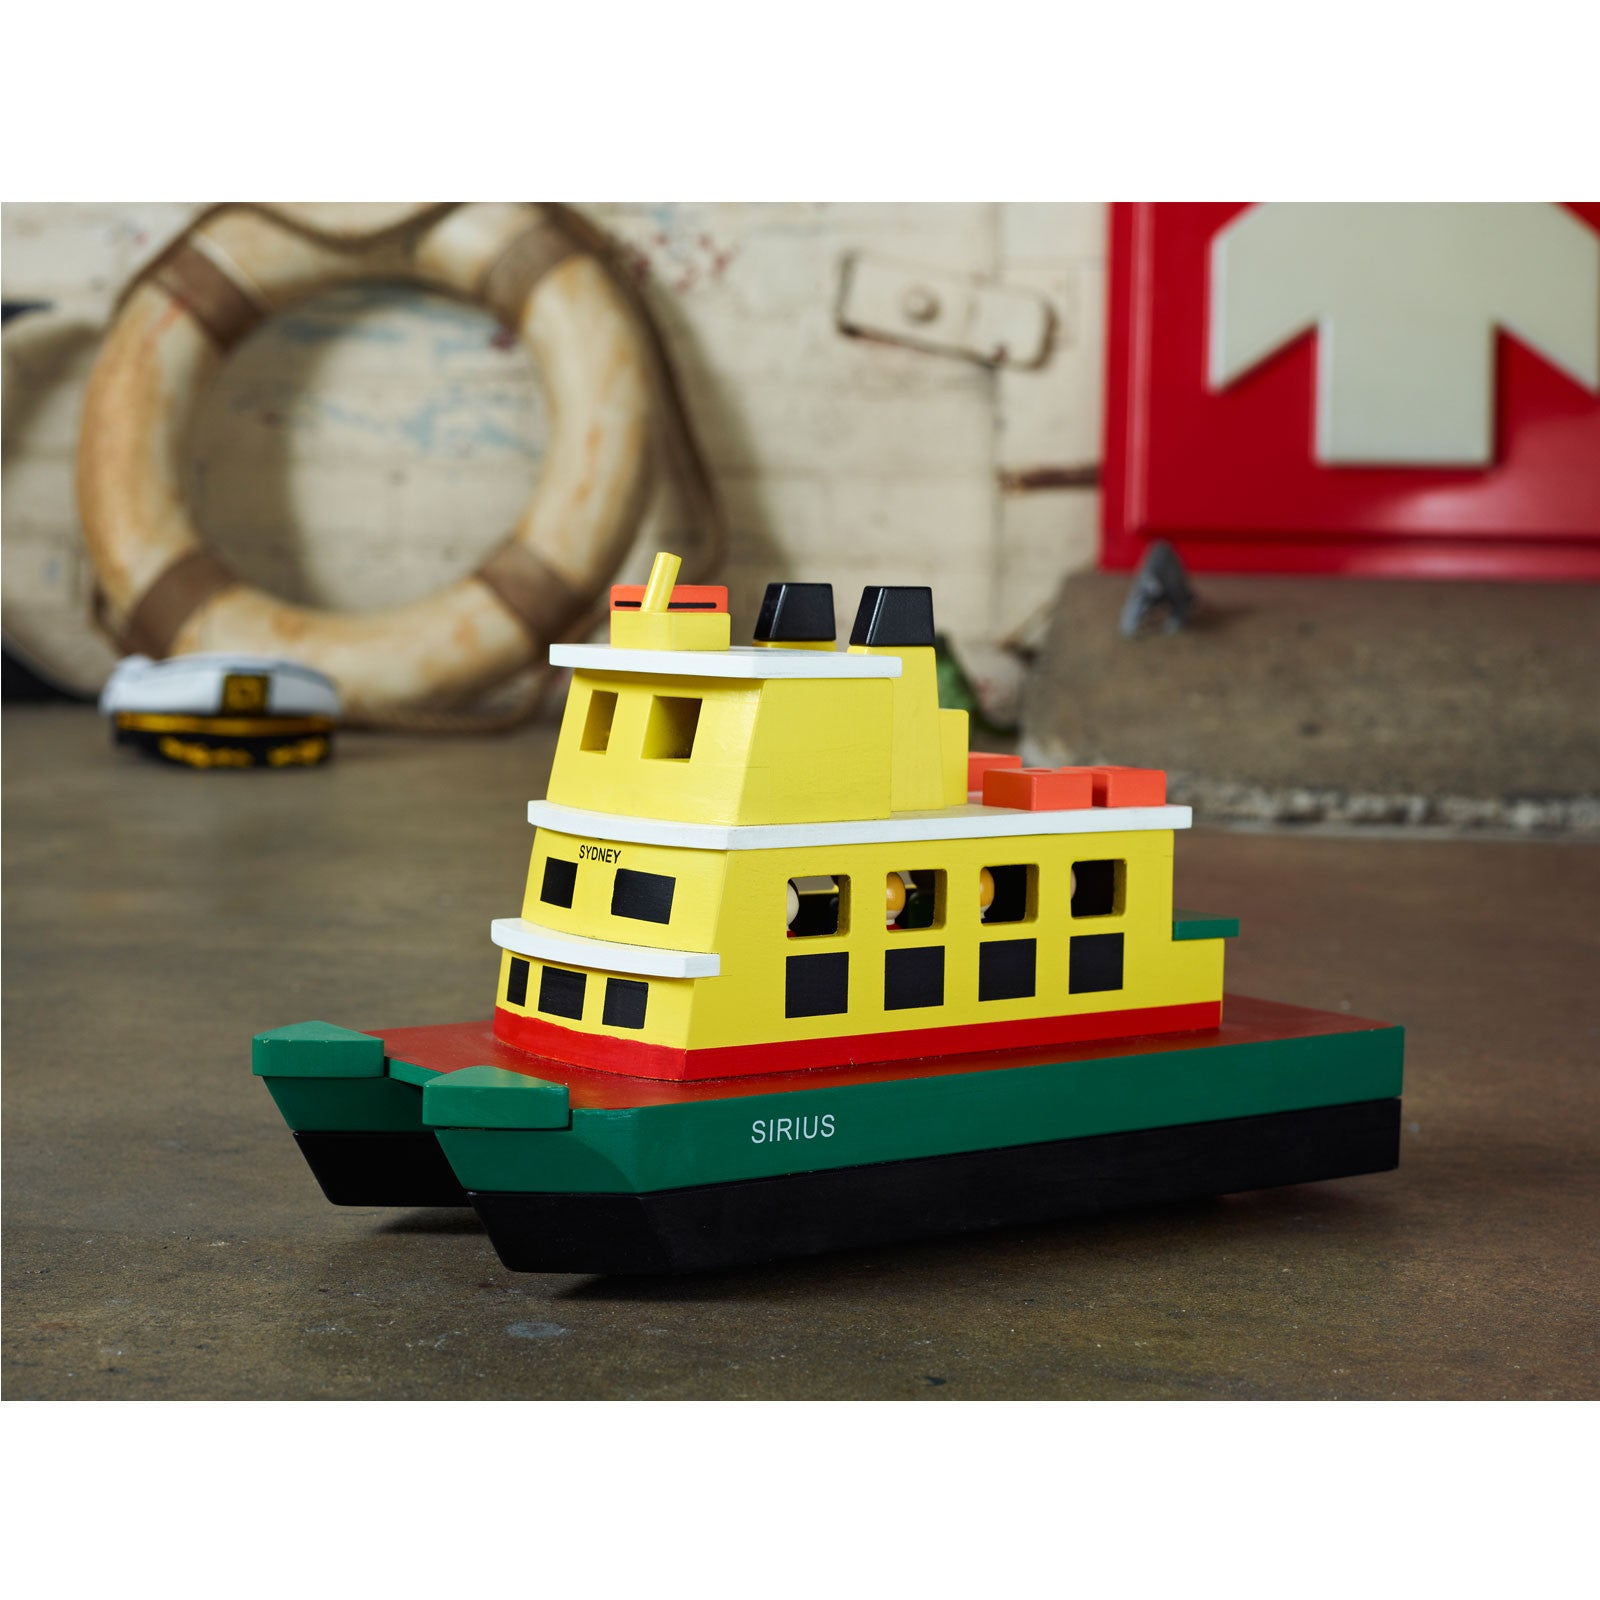 Make Me Iconic Wooden Sydney Ferry Toy Make Me Iconic Toy Boats at Little Earth Nest Eco Shop